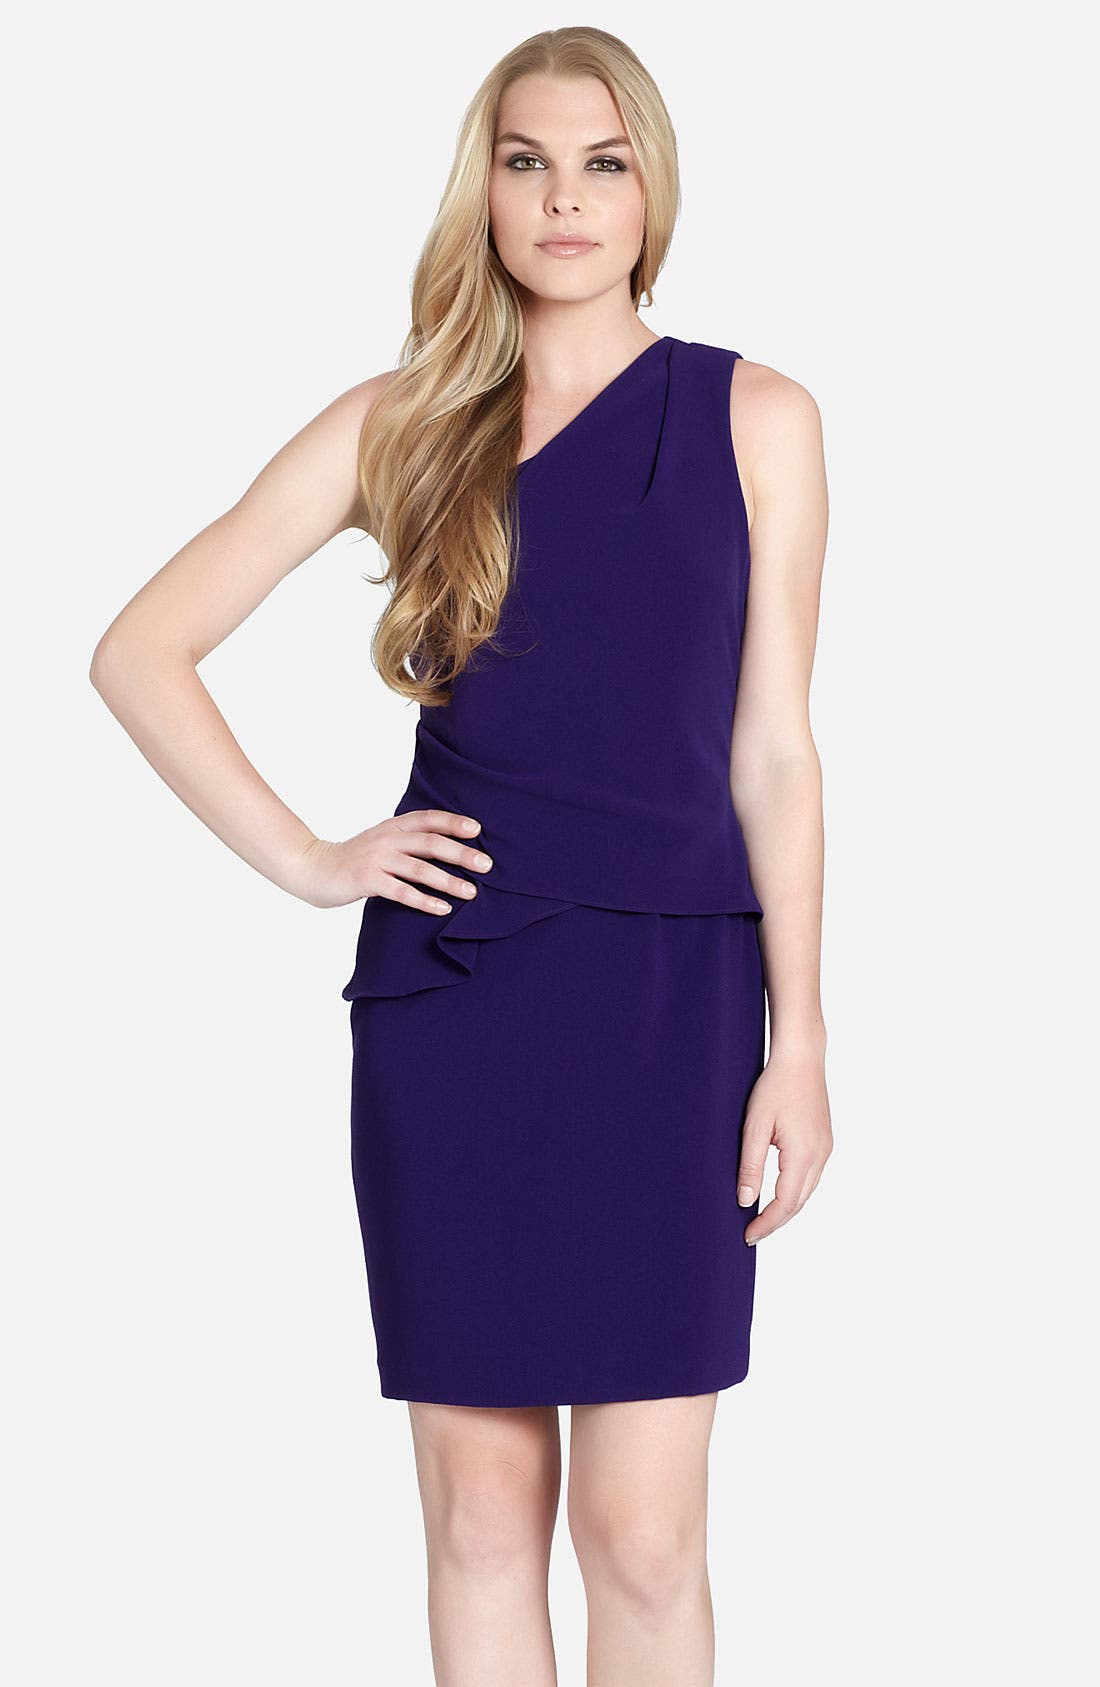 Main Image - Cynthia Steffe 'Brielle' One Shoulder Side Peplum Dress